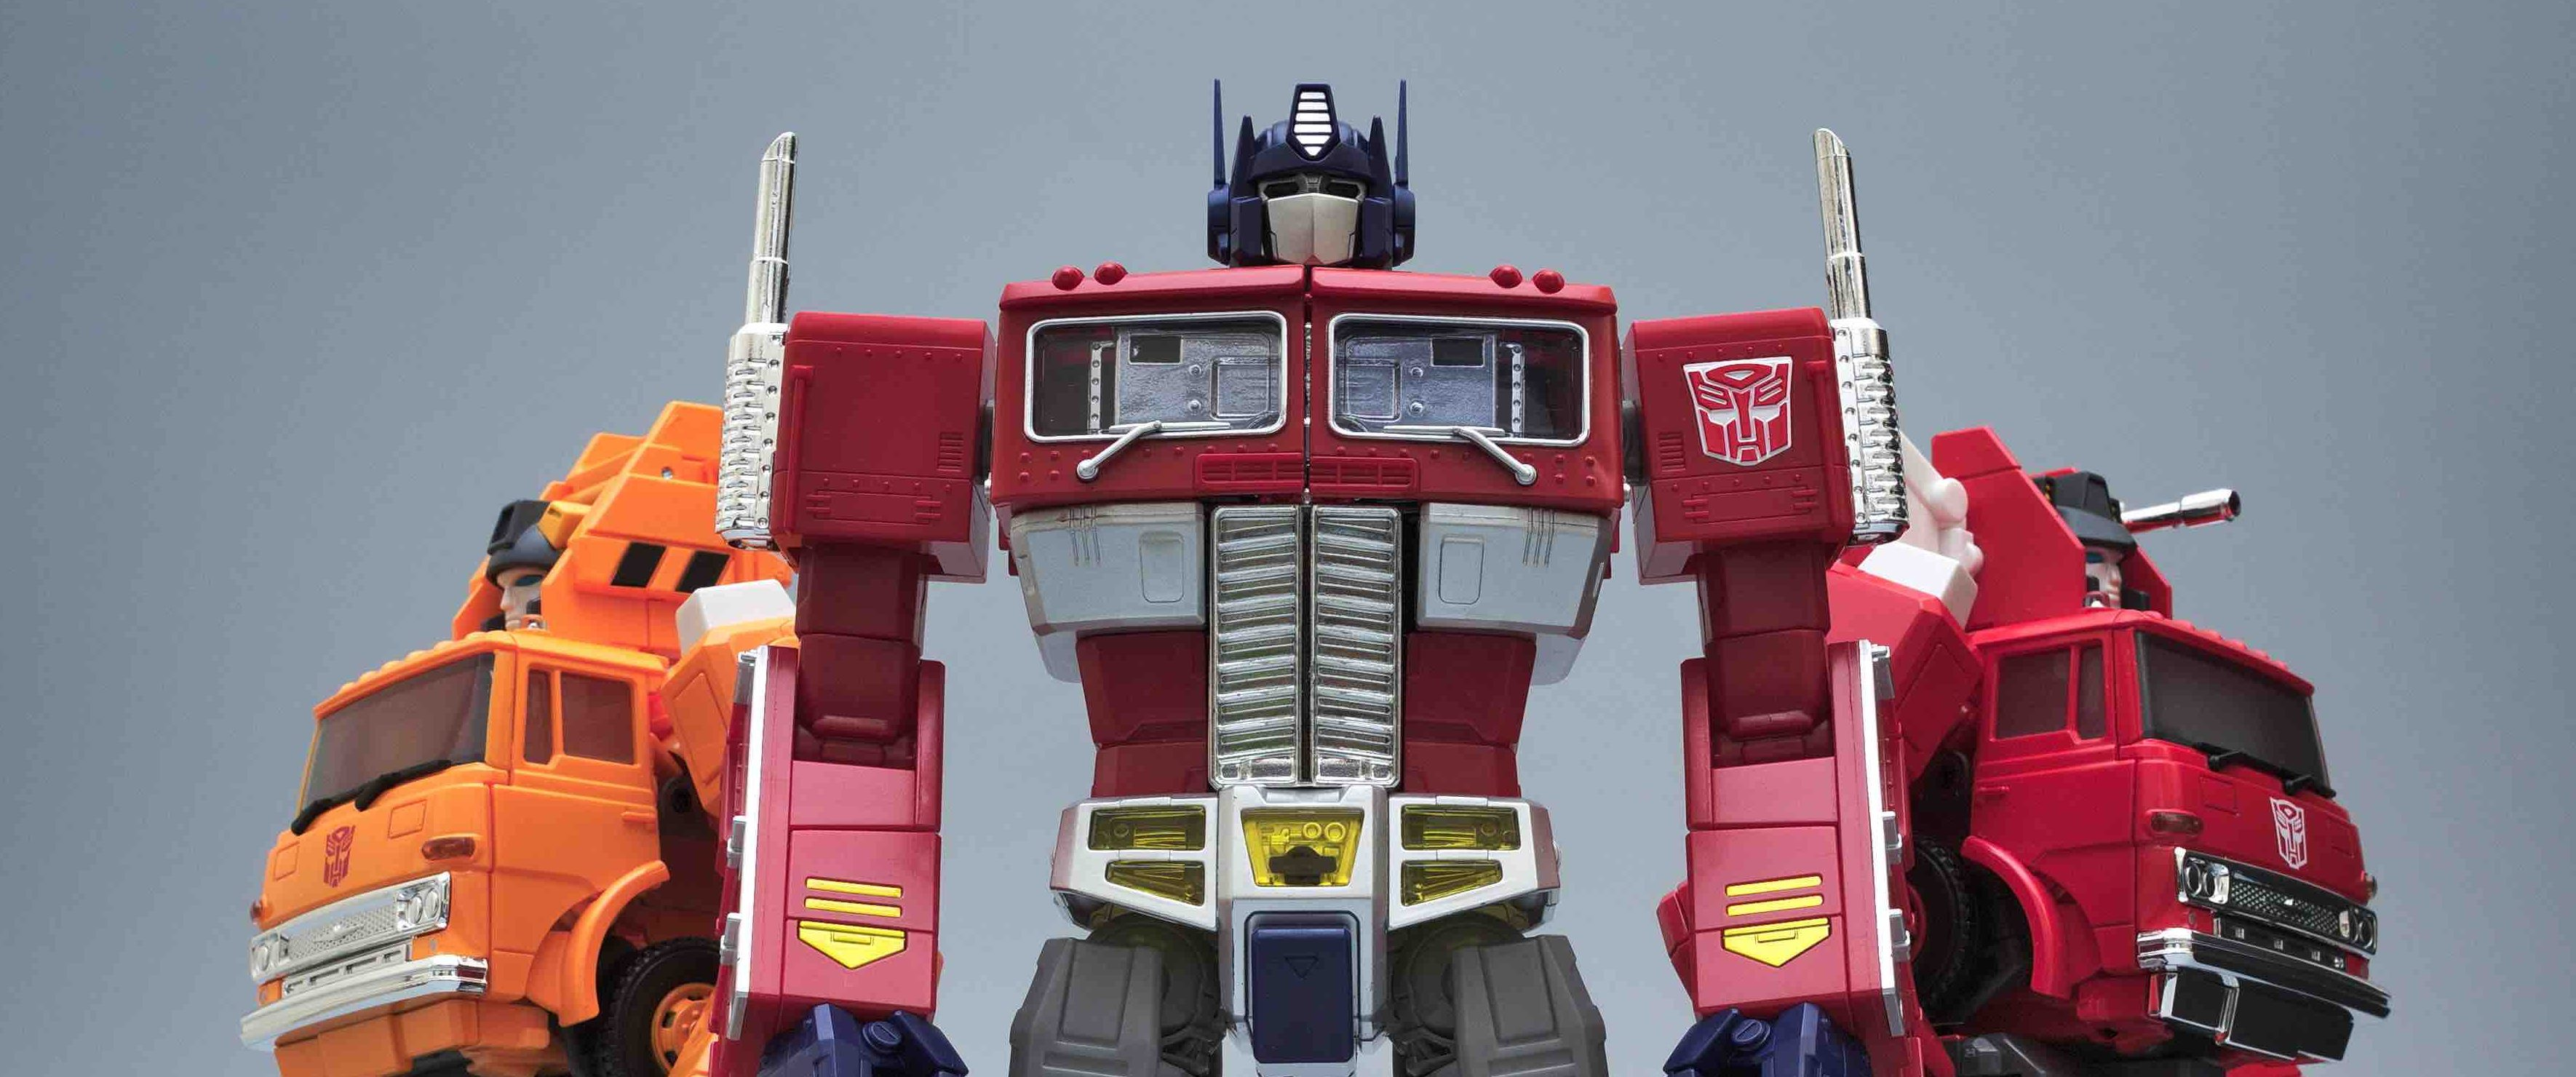 Here's What Life Is Like When Your 'Transformers'-Loving Dad Names You Optimosprayn